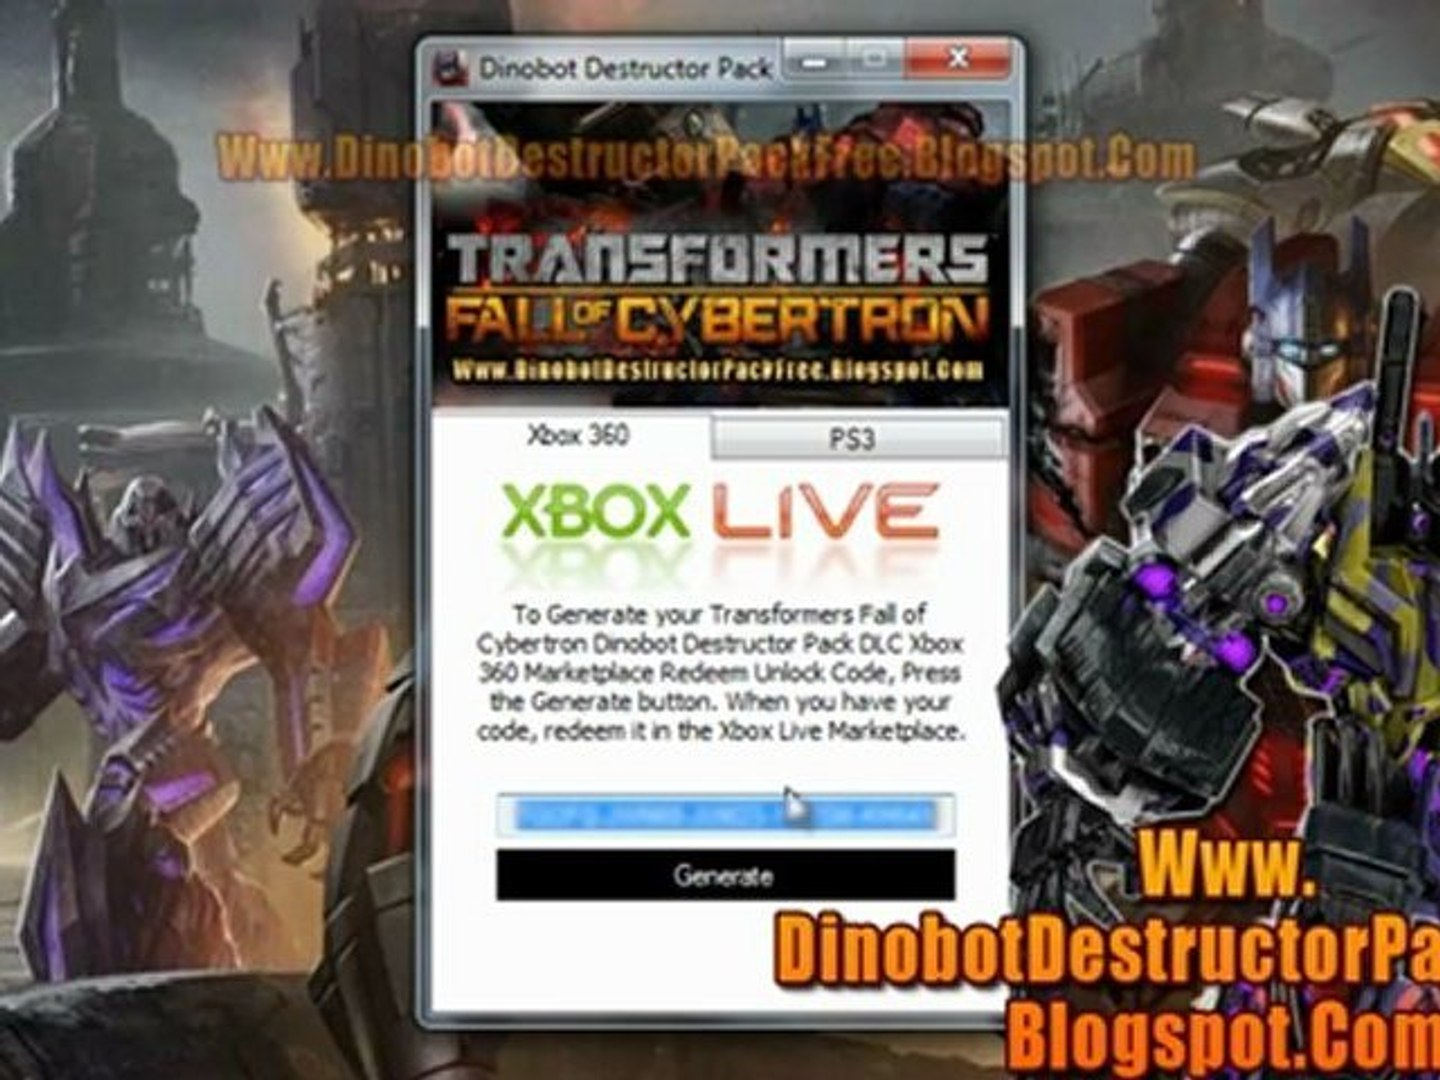 Transformers Fall of Cybertron Dinobot Destructor Pack DLC - Xbox 360 - PS3